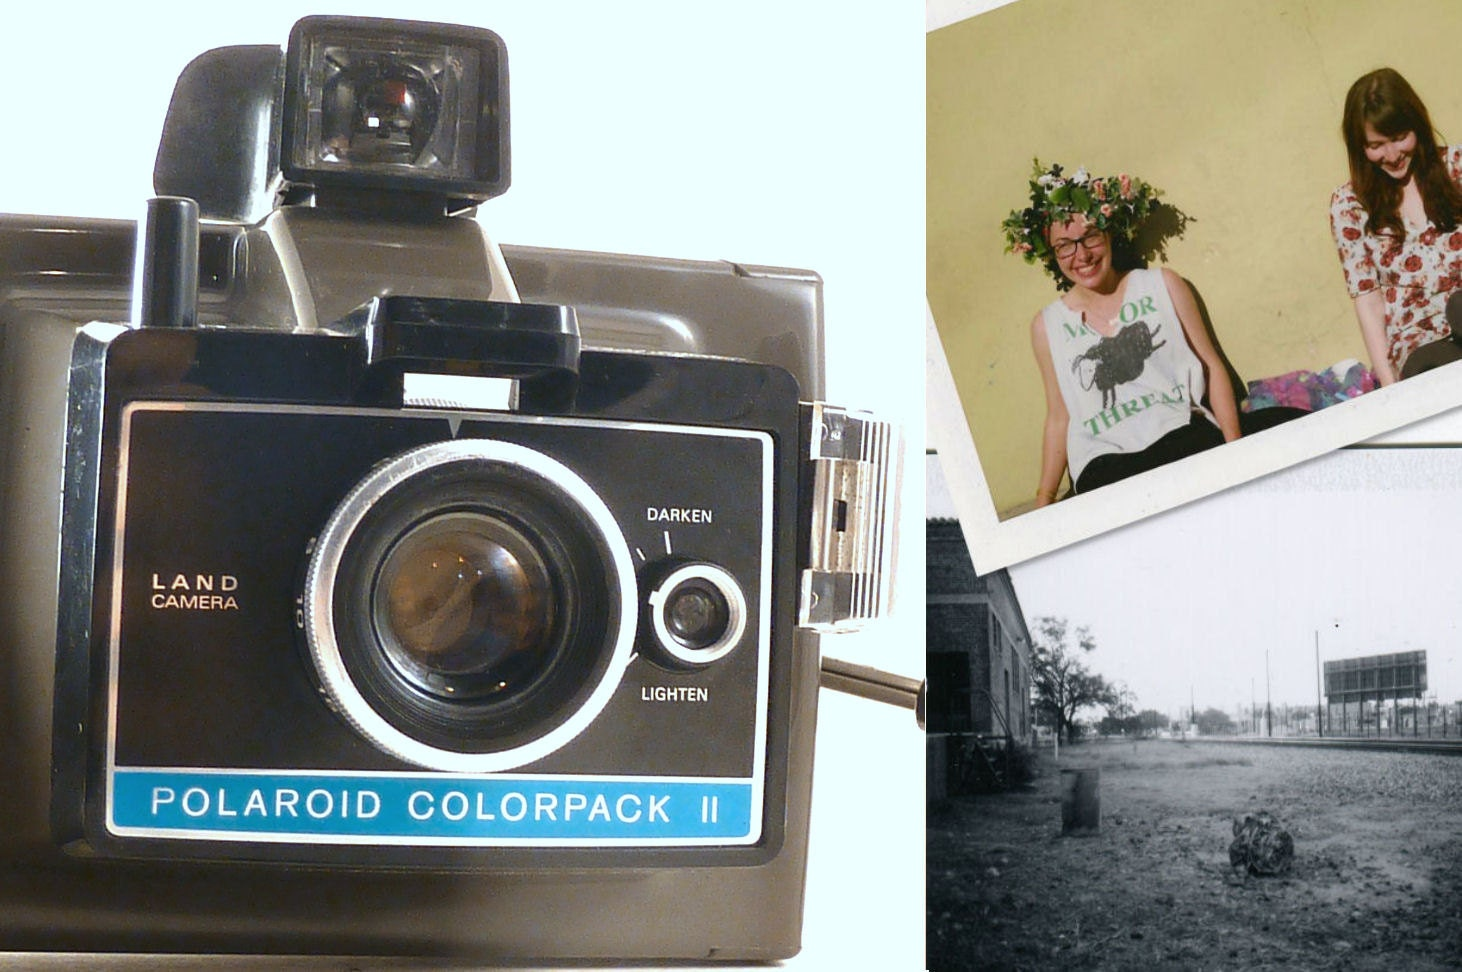 working polaroid colorpack ii instant photo camera takes. Black Bedroom Furniture Sets. Home Design Ideas